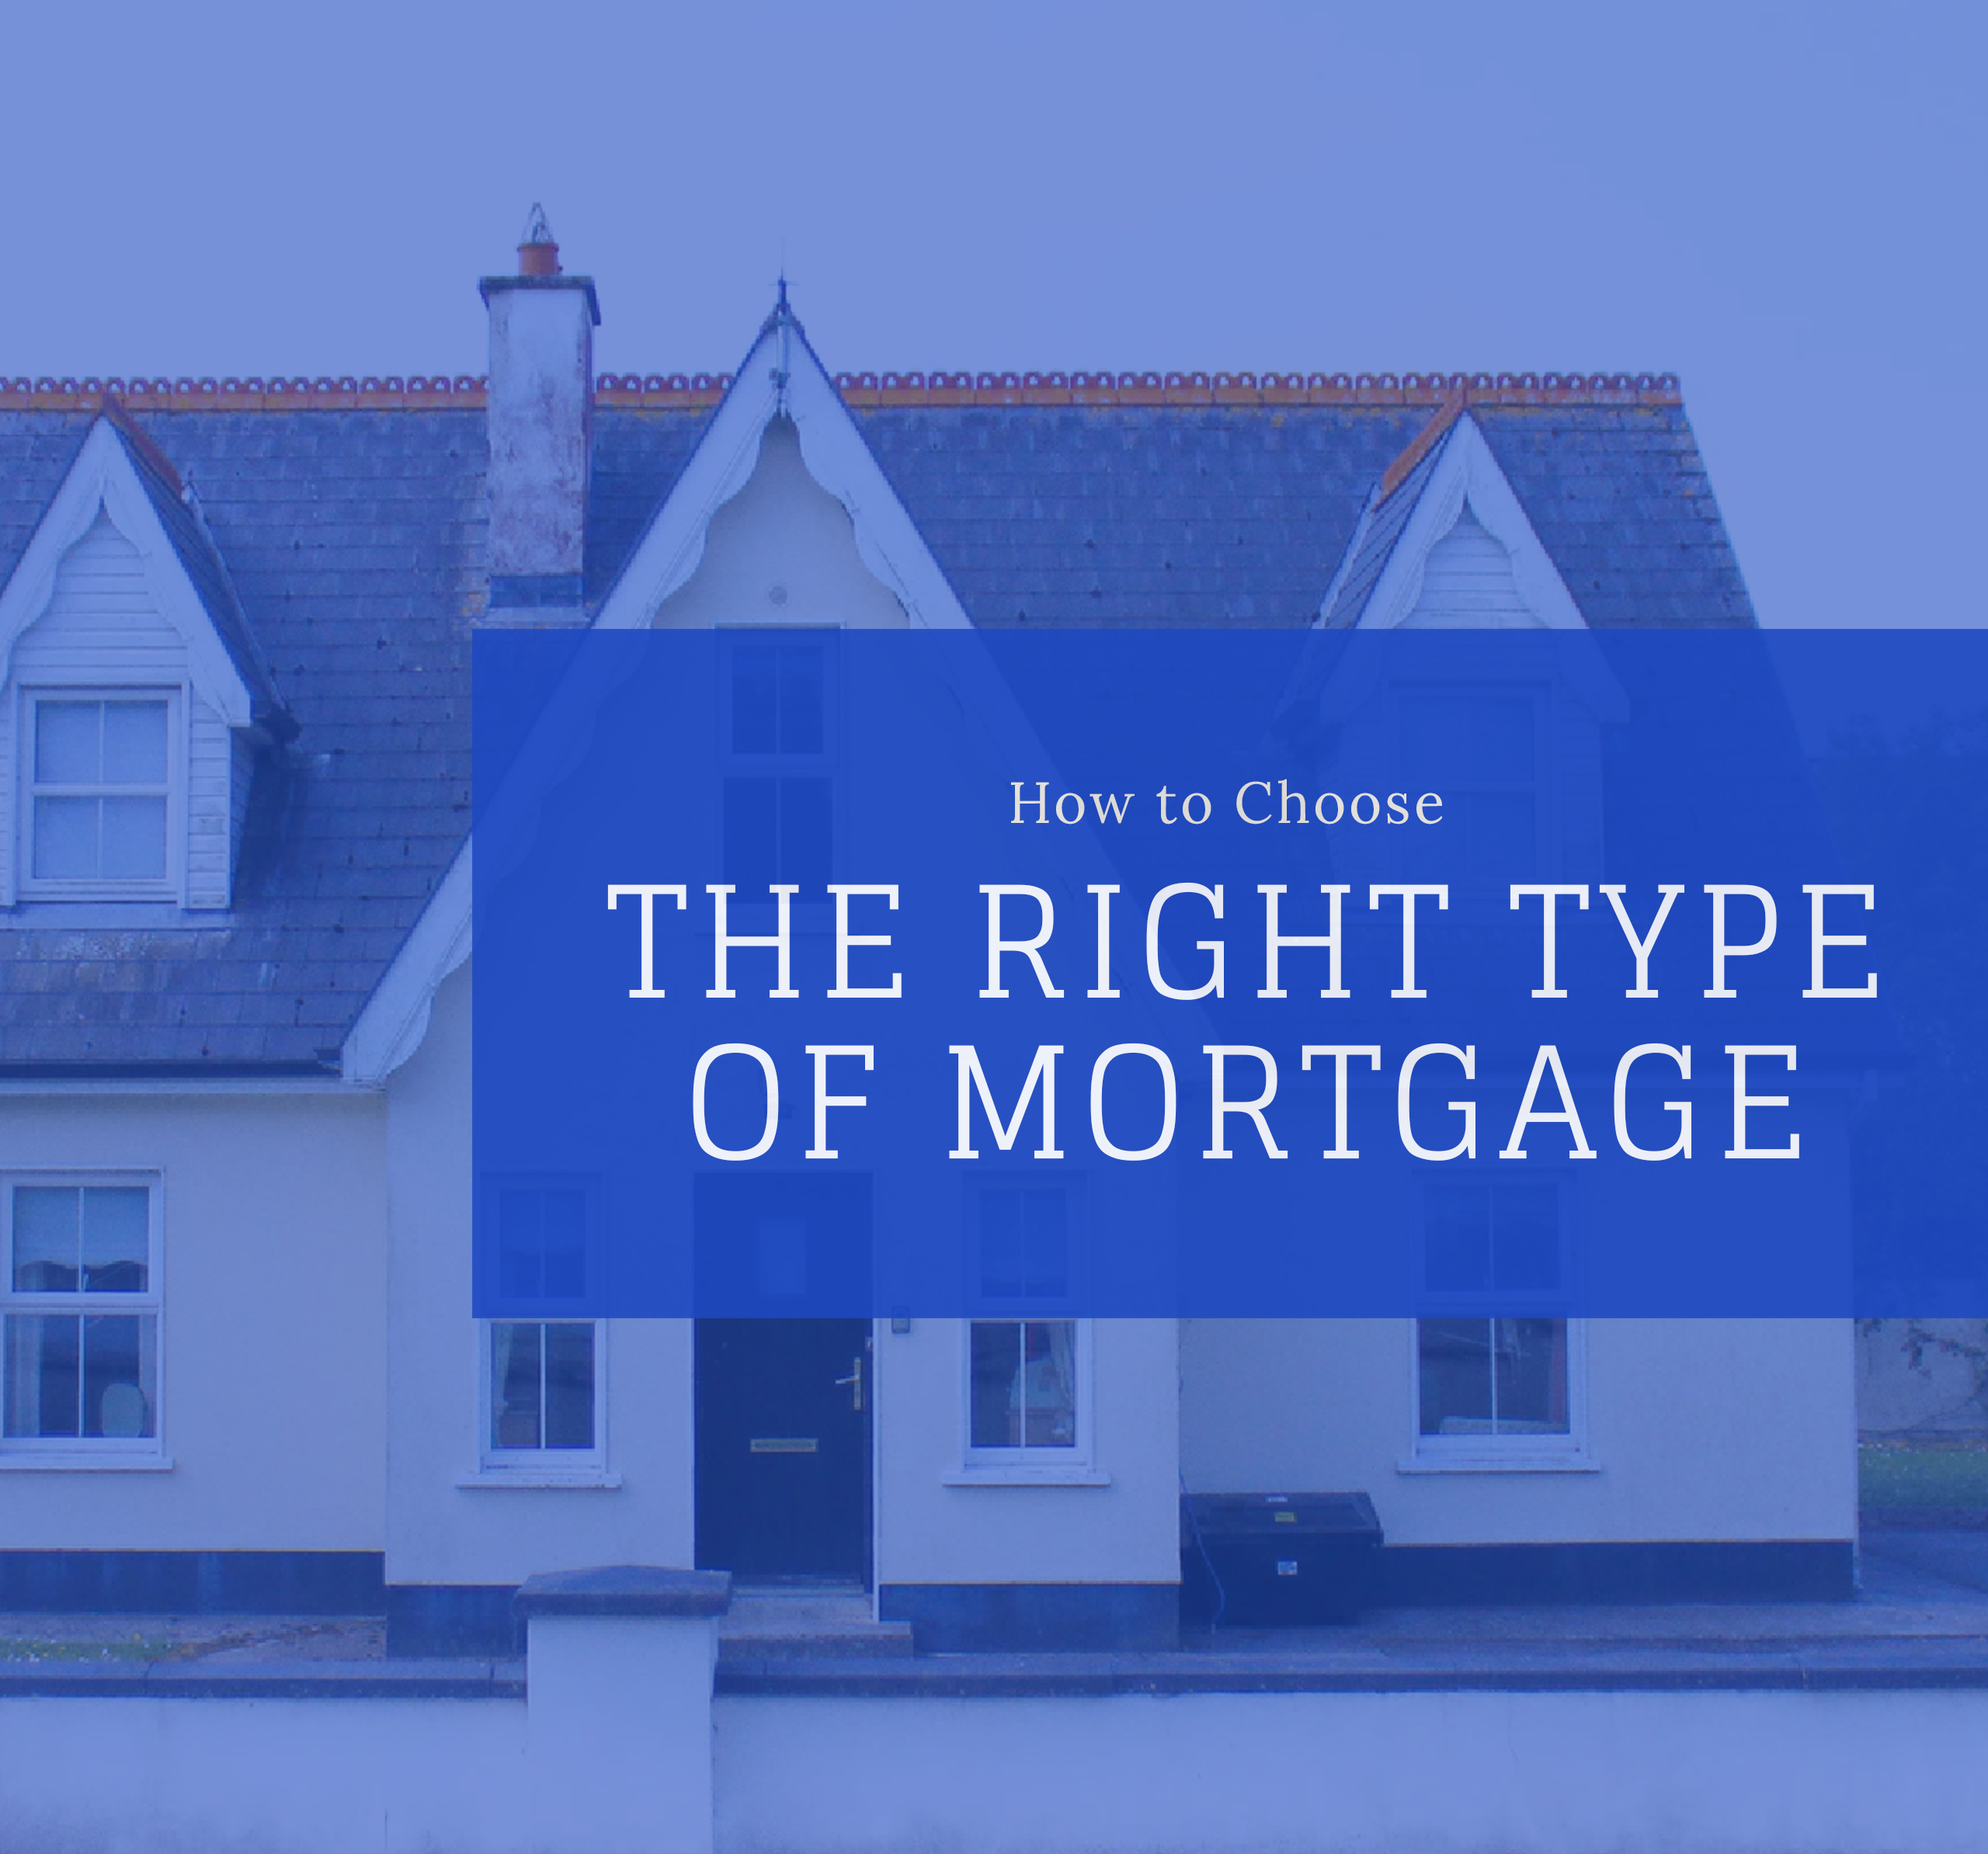 How to Choose the Right Type of Mortgage